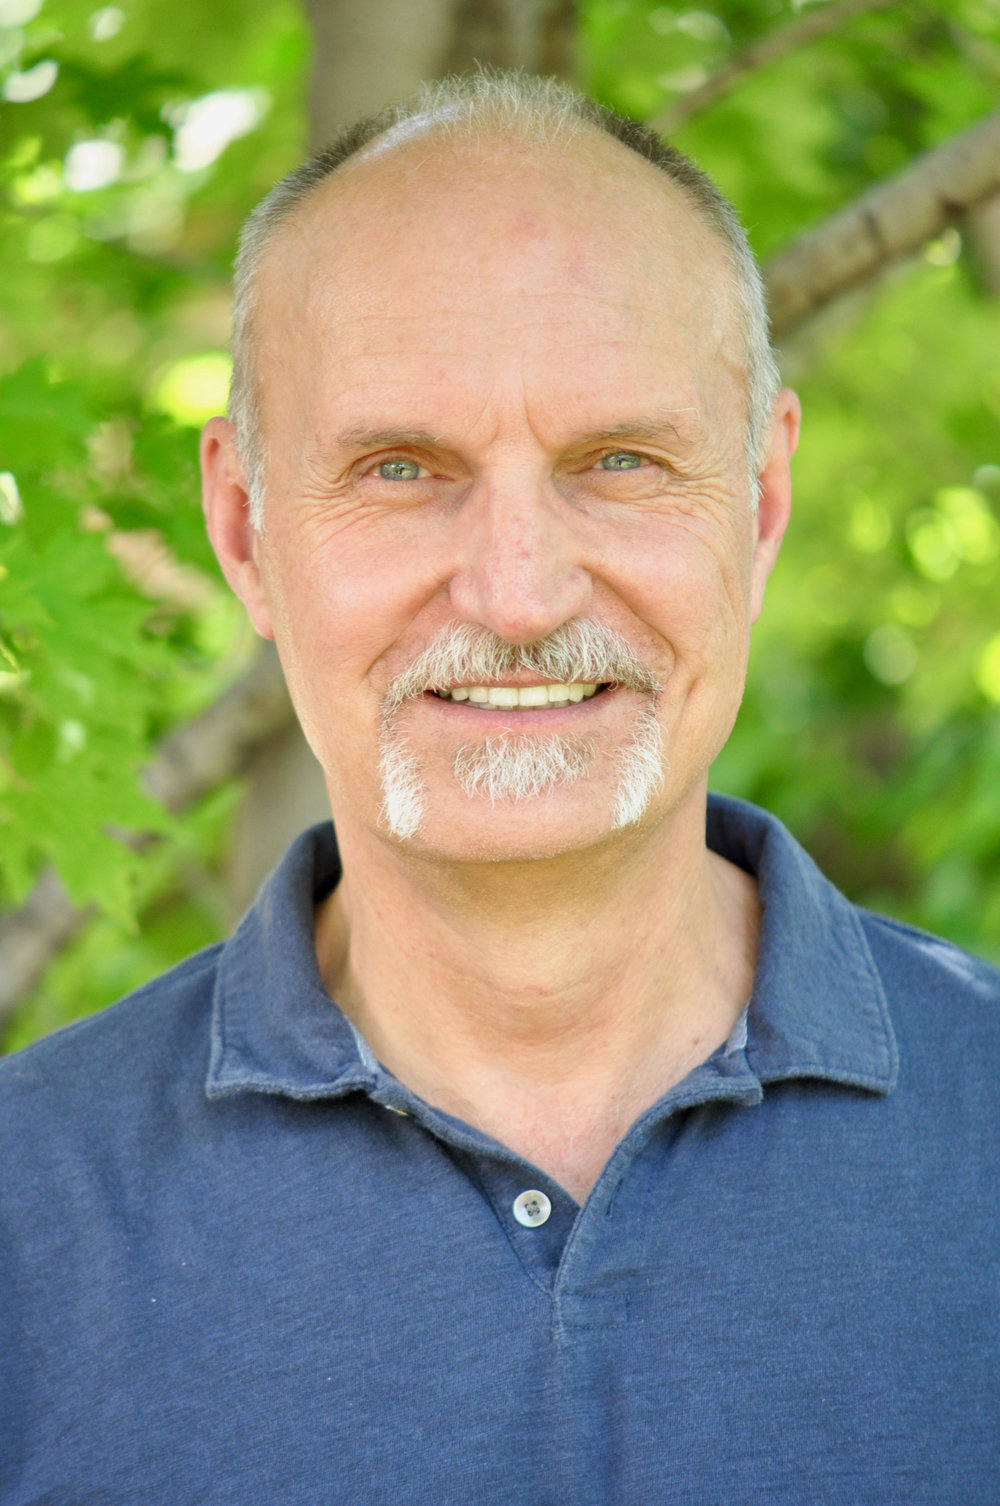 - Bob is the founder of The Cross Ministry Group and creator of the Men at the Cross and Women at the Cross weekend retreats. He is also the creator of several events for men and women - Living in Truth, Breaking Down the Walls and a series of workshops dealing with loving God with all of our Heart, Soul, Mind and Strength. Bob has a Master of Divinity from Gordon-Conwell Theological Seminary in South Hamilton, Massachusetts and Master of Arts in Counseling from Denver Seminary in Denver, Colorado.His passion is to join with others in creating opportunities for people to more fully live out their new selves in Christ and to experience the freedom that comes from God's grace and truth.